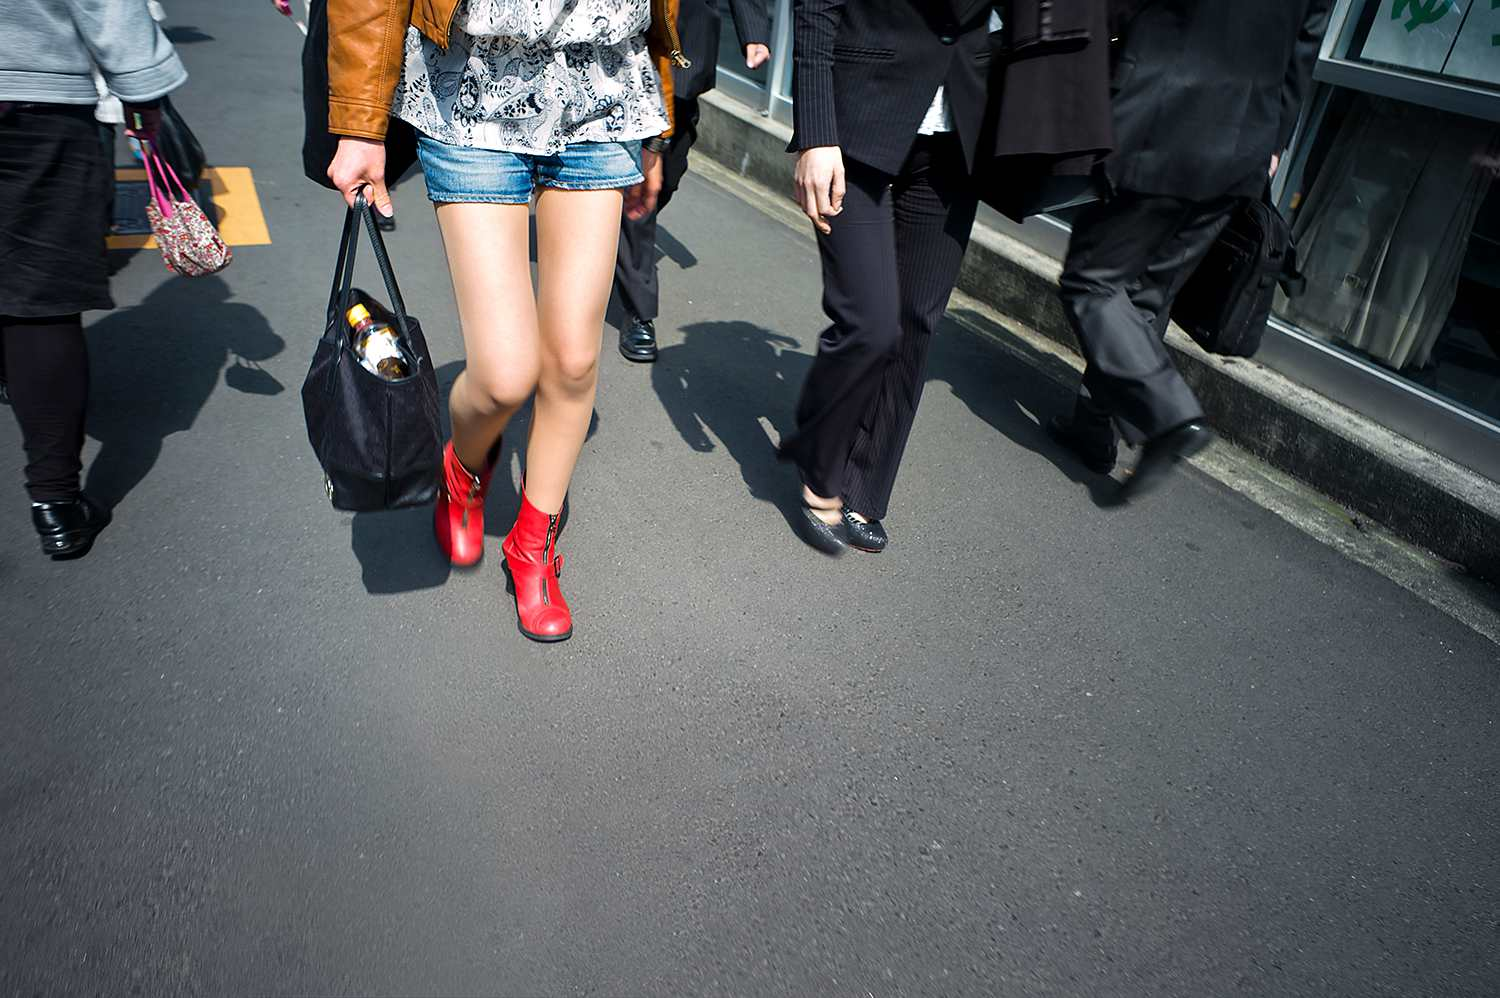 Woman with red boots